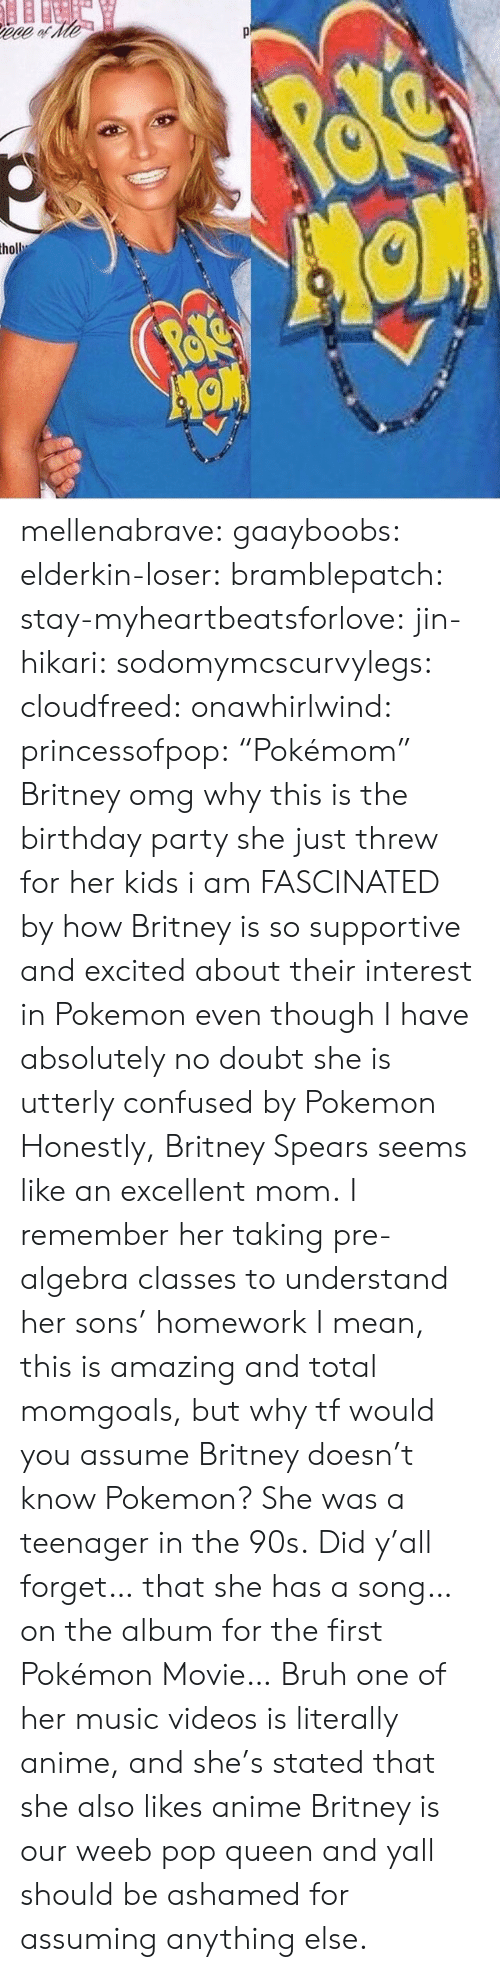 "Omg Why: mellenabrave:  gaayboobs:  elderkin-loser:   bramblepatch:   stay-myheartbeatsforlove:  jin-hikari:  sodomymcscurvylegs:  cloudfreed:  onawhirlwind:  princessofpop:  ""Pokémom""  Britney omg why     this is the birthday party she just threw for her kids i am FASCINATED by how Britney is so supportive and excited about their interest in Pokemon even though I have absolutely no doubt she is utterly confused by Pokemon  Honestly, Britney Spears seems like an excellent mom.   I remember her taking pre-algebra classes to understand her sons' homework   I mean, this is amazing and total momgoals, but why tf would you assume Britney doesn't know Pokemon? She was a teenager in the 90s.   Did y'all forget… that she has a song… on the album for the first Pokémon Movie…   Bruh one of her music videos is literally anime, and she's stated that she also likes anime   Britney is our weeb pop queen and yall should be ashamed for assuming anything else."